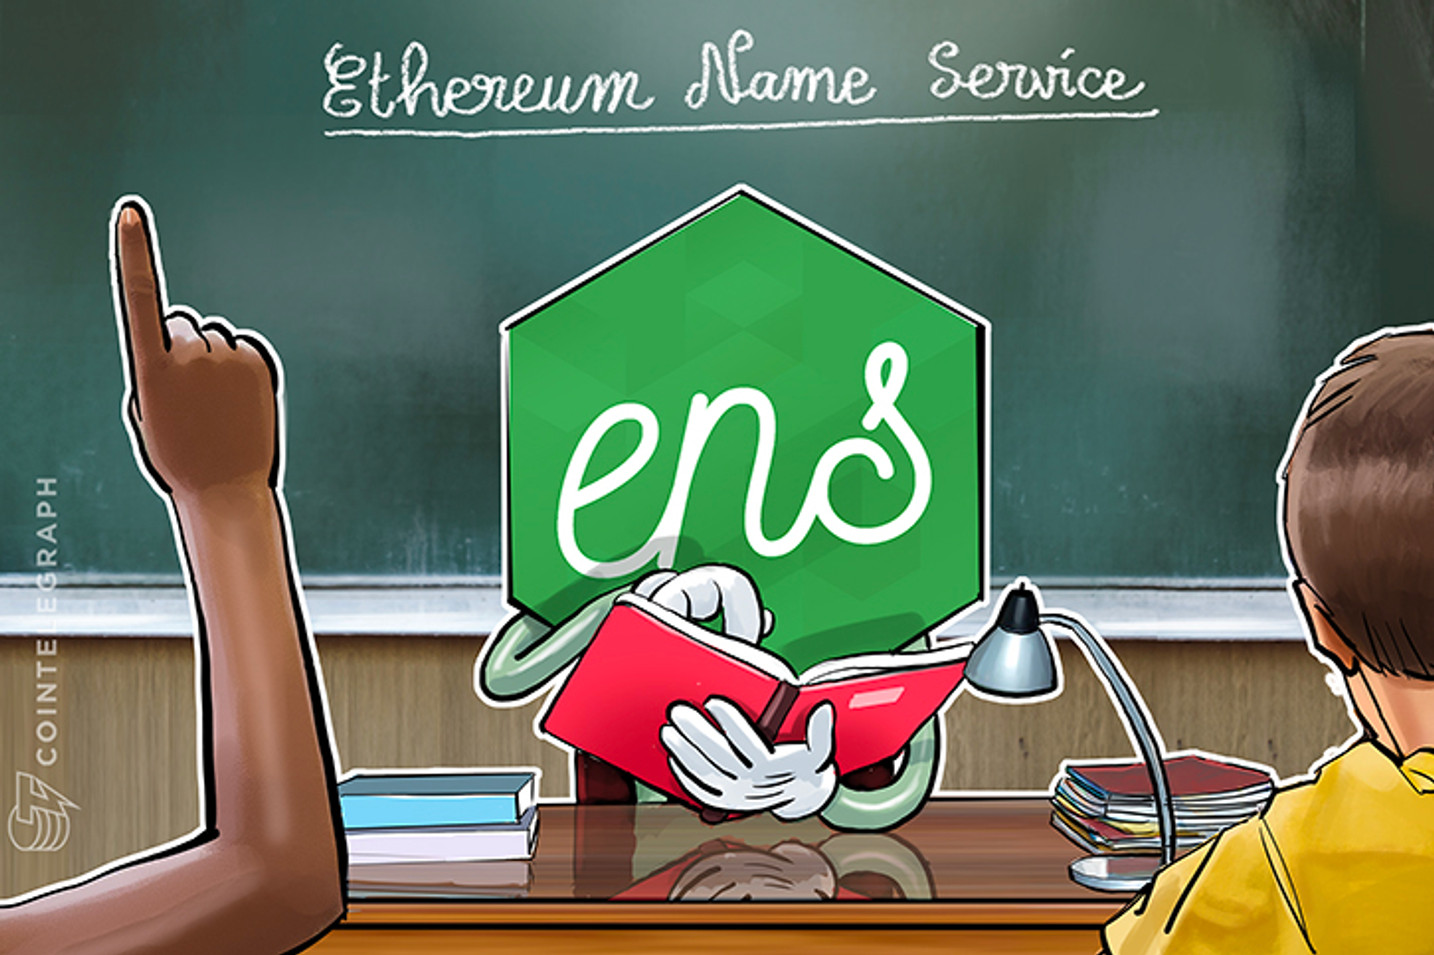 Speculators Jump On New Gold Rush Called Ethereum Name Service